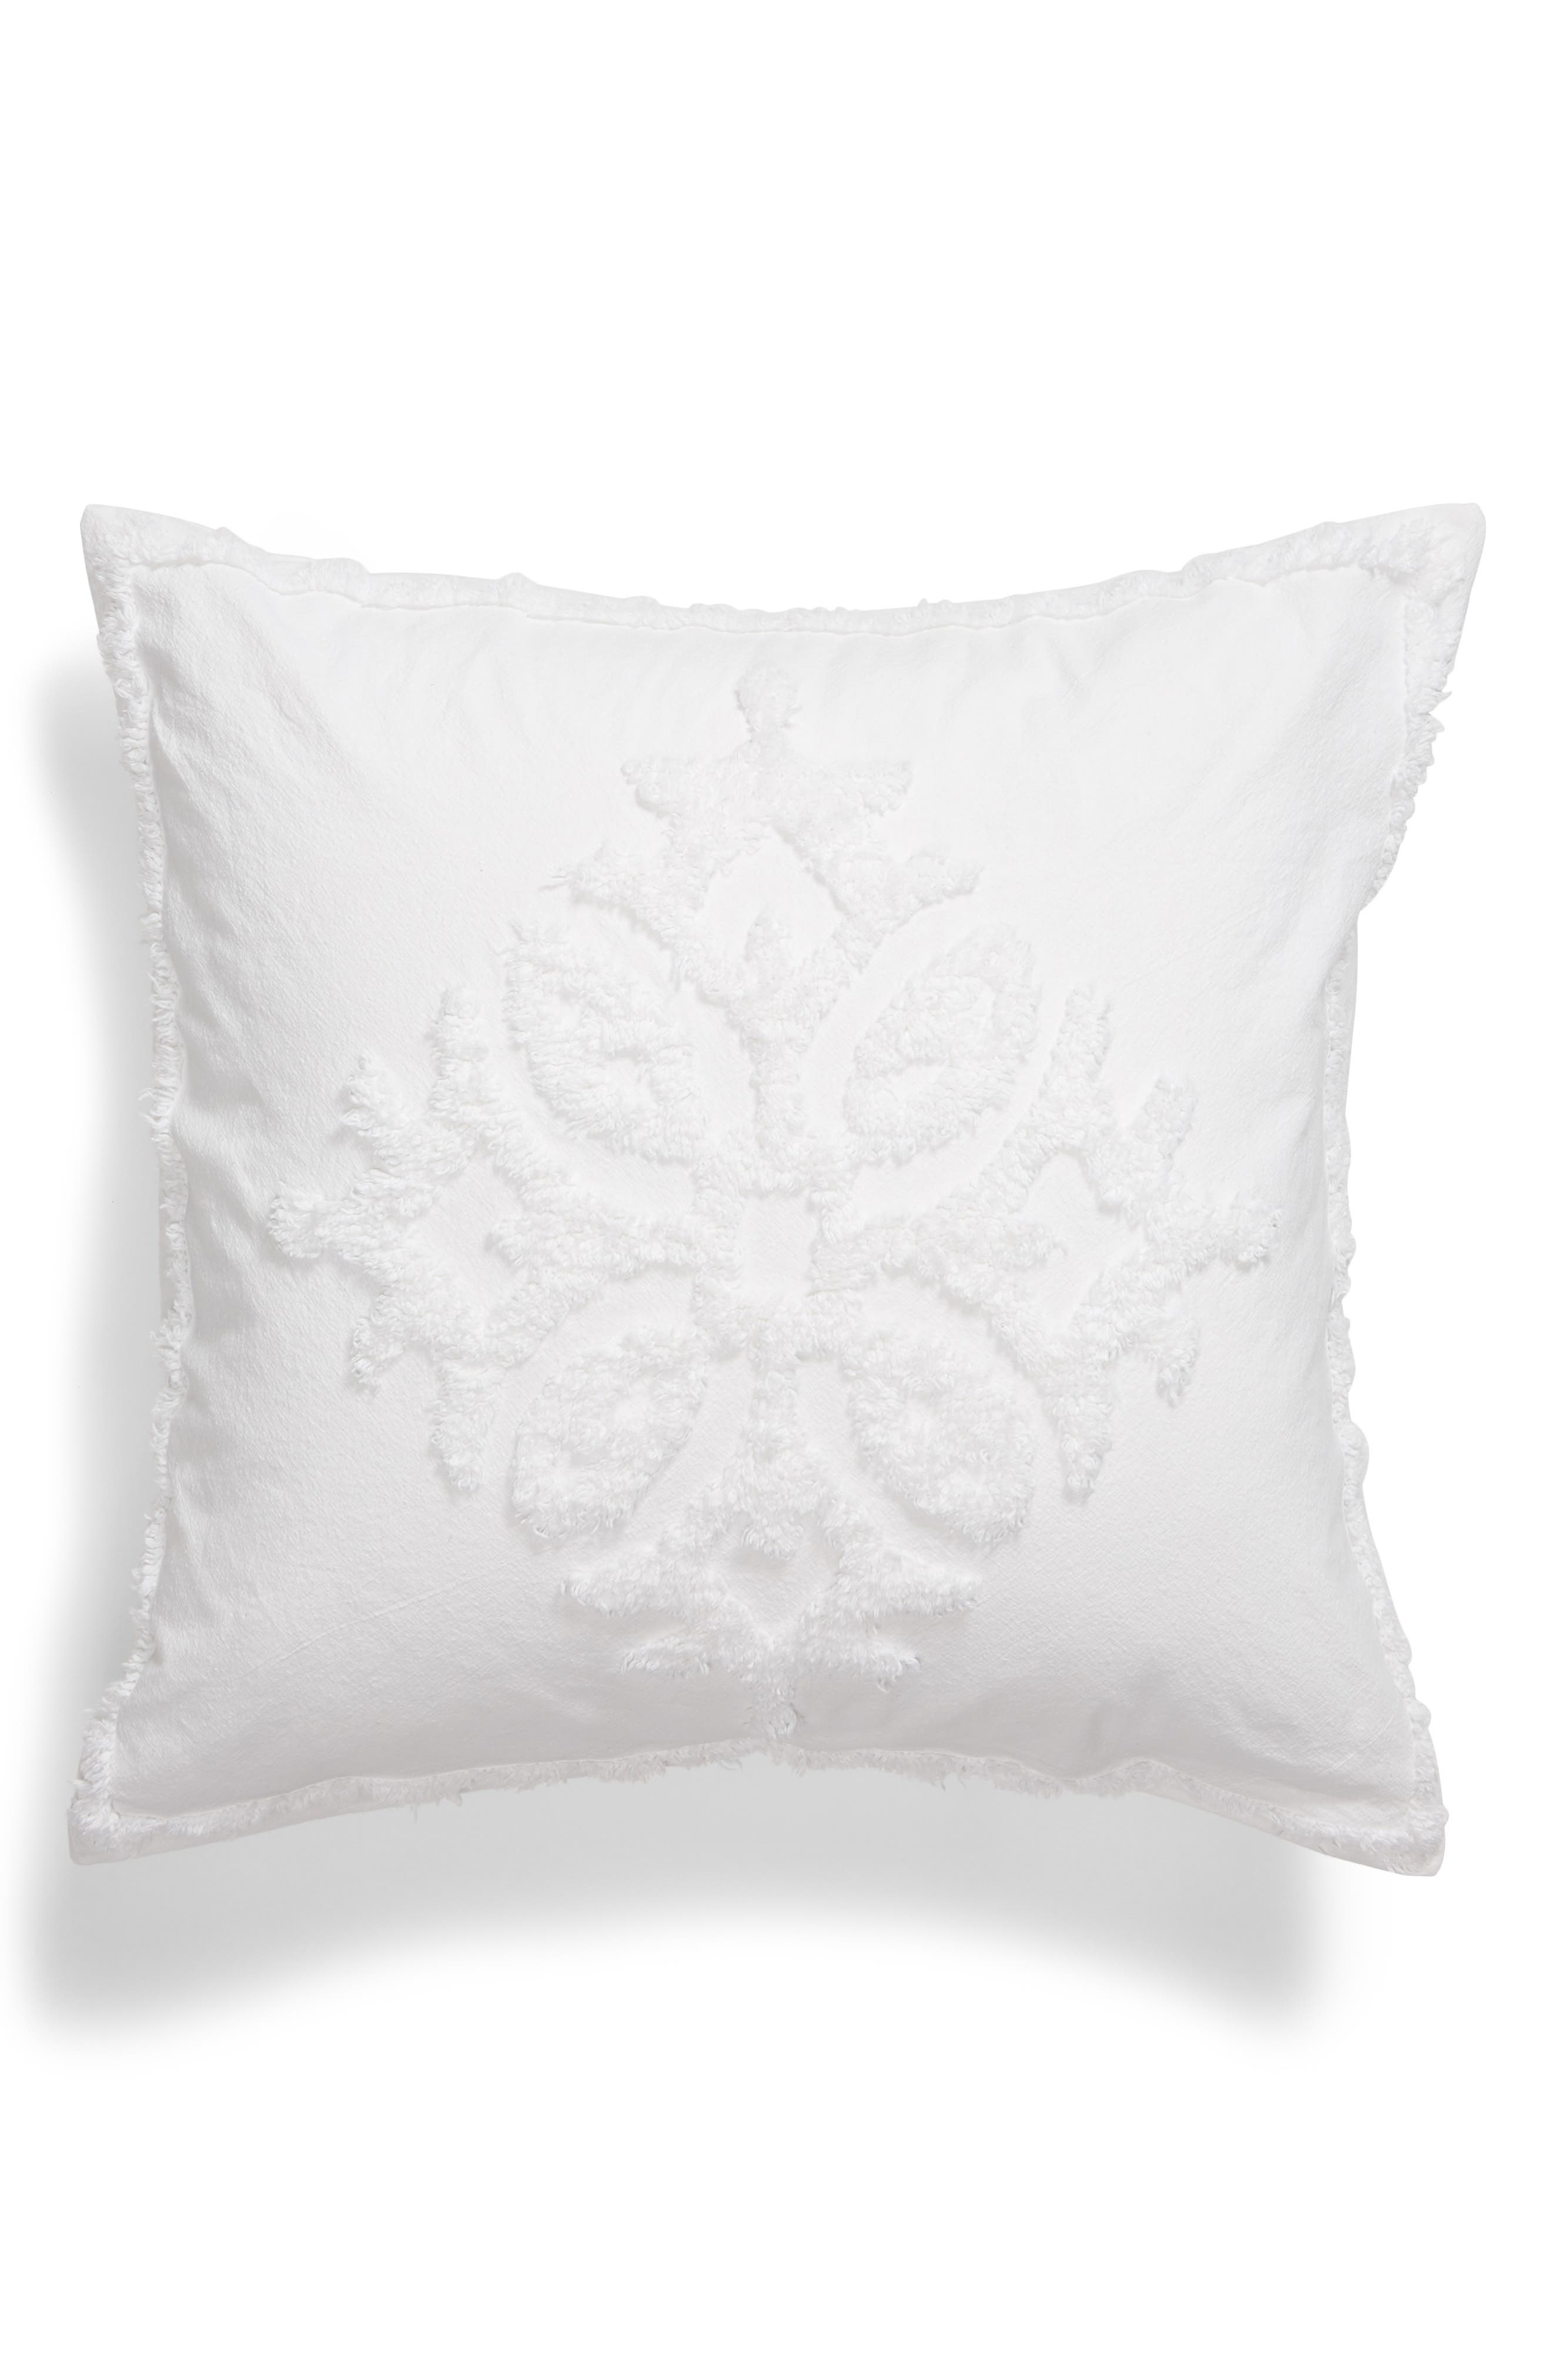 Nordstrom at Home Helena Euro Sham